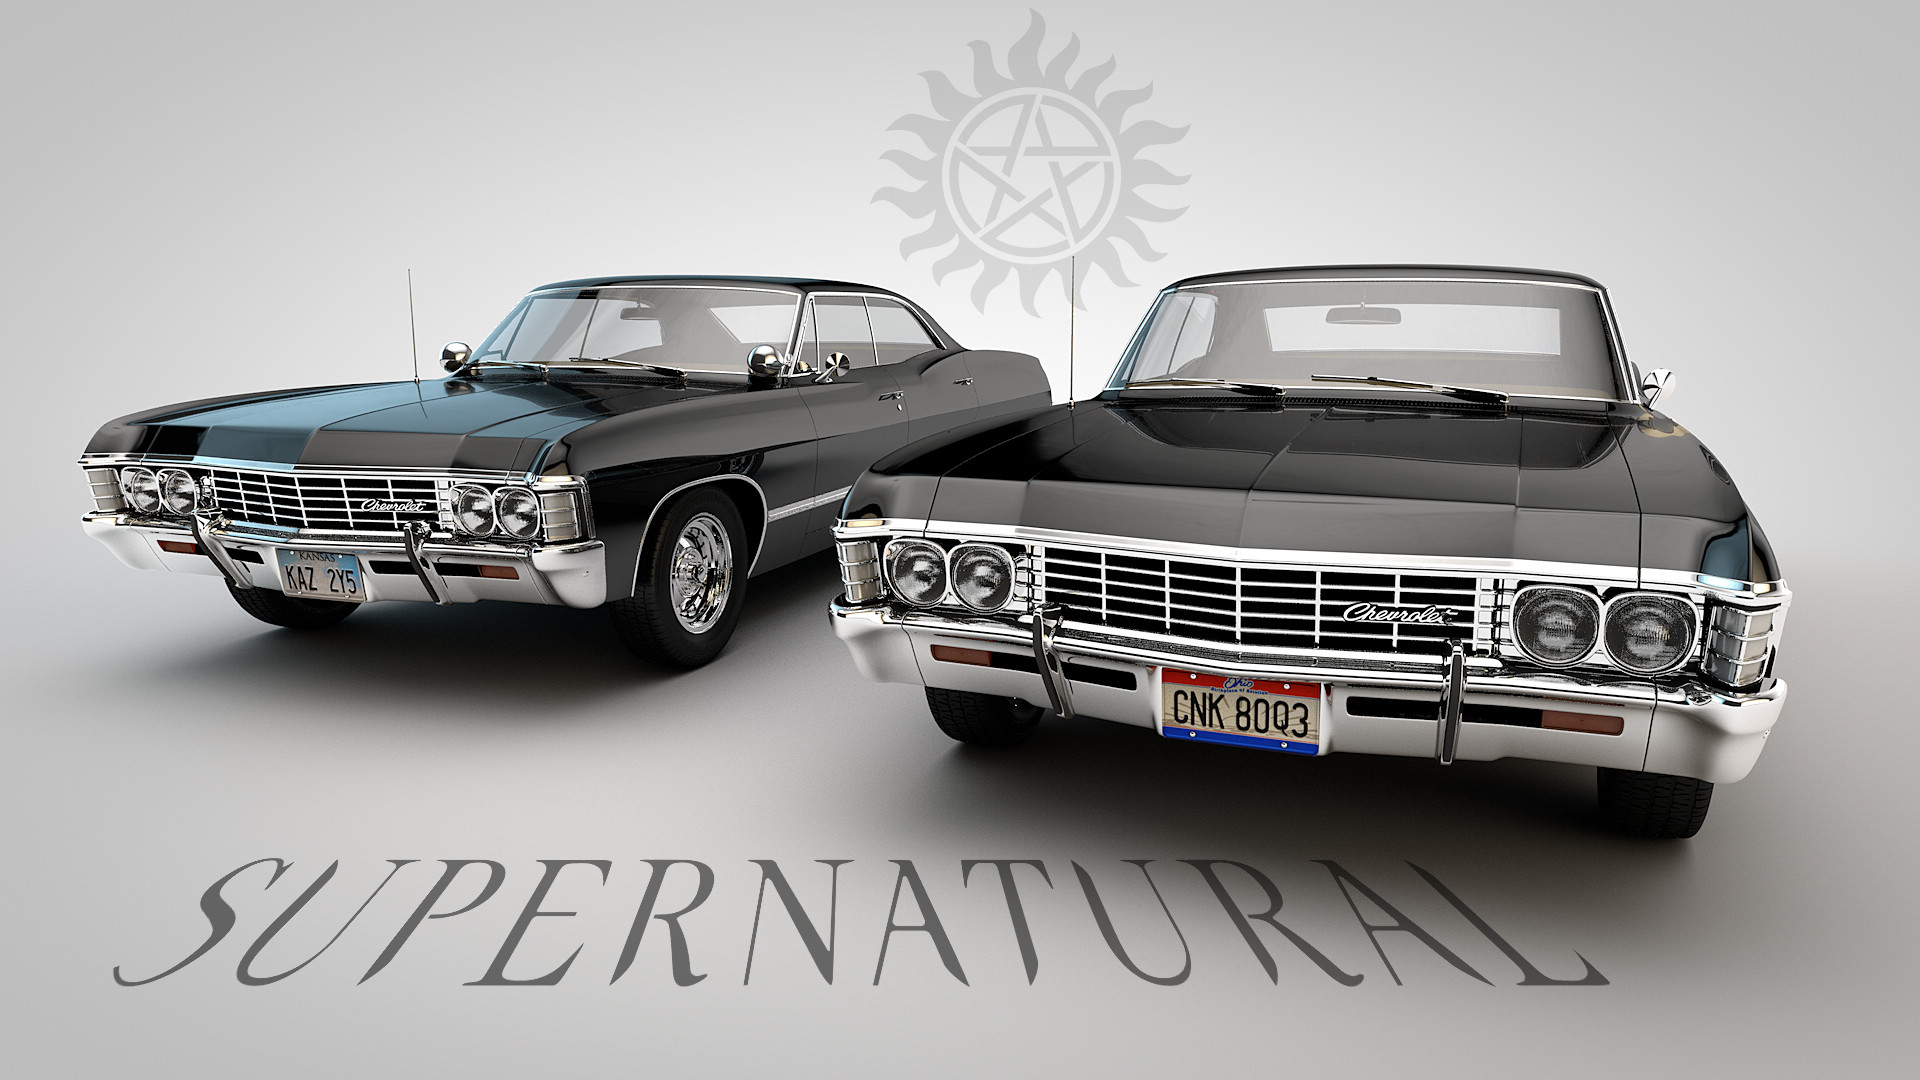 Troy Benesch Kansas And Ohio Chevy Impala Homage To The Tv - Supernatural show car